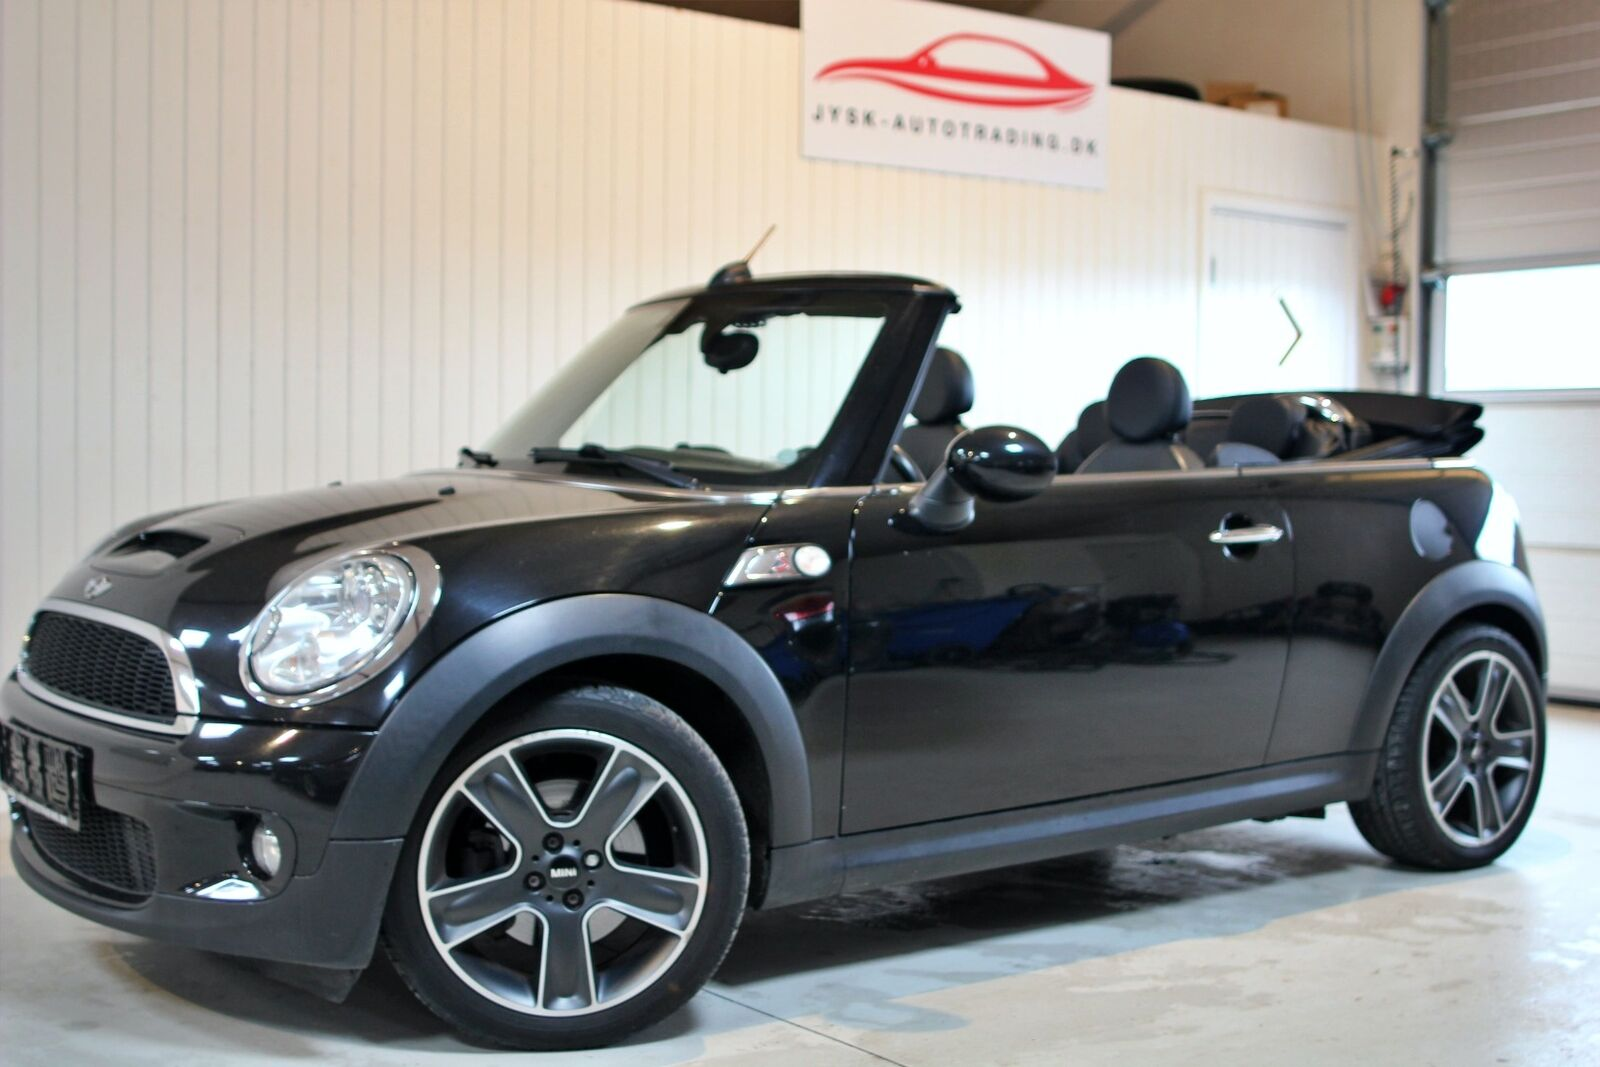 Mini Cooper S 1,6 Cabriolet Steptr. 2d